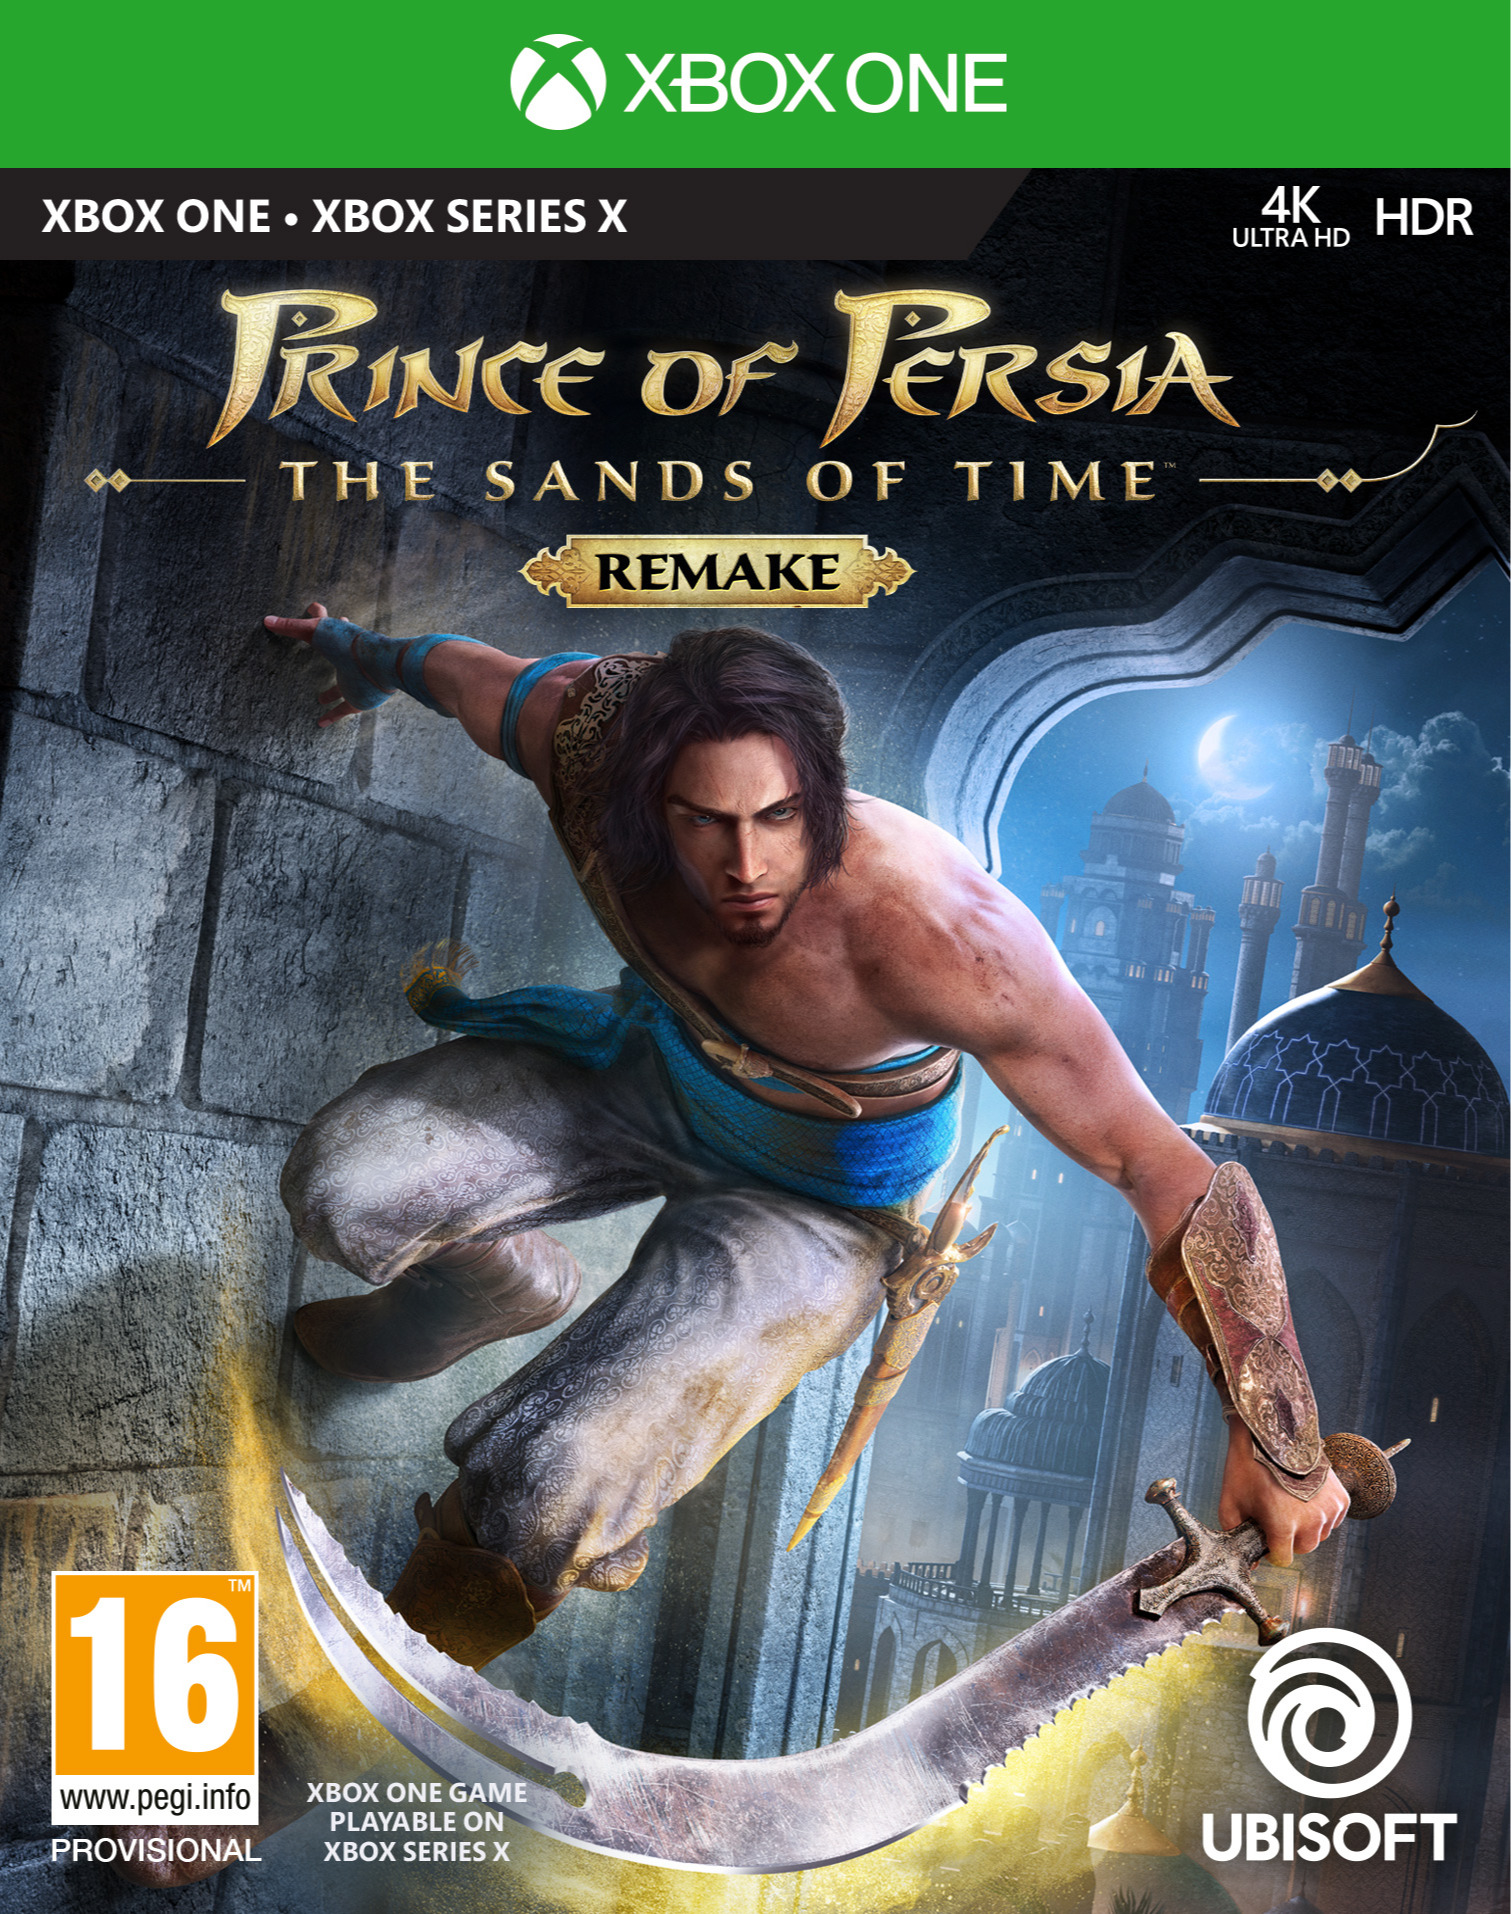 Prince of Persia: The Sands of Time Remake (XBOX)